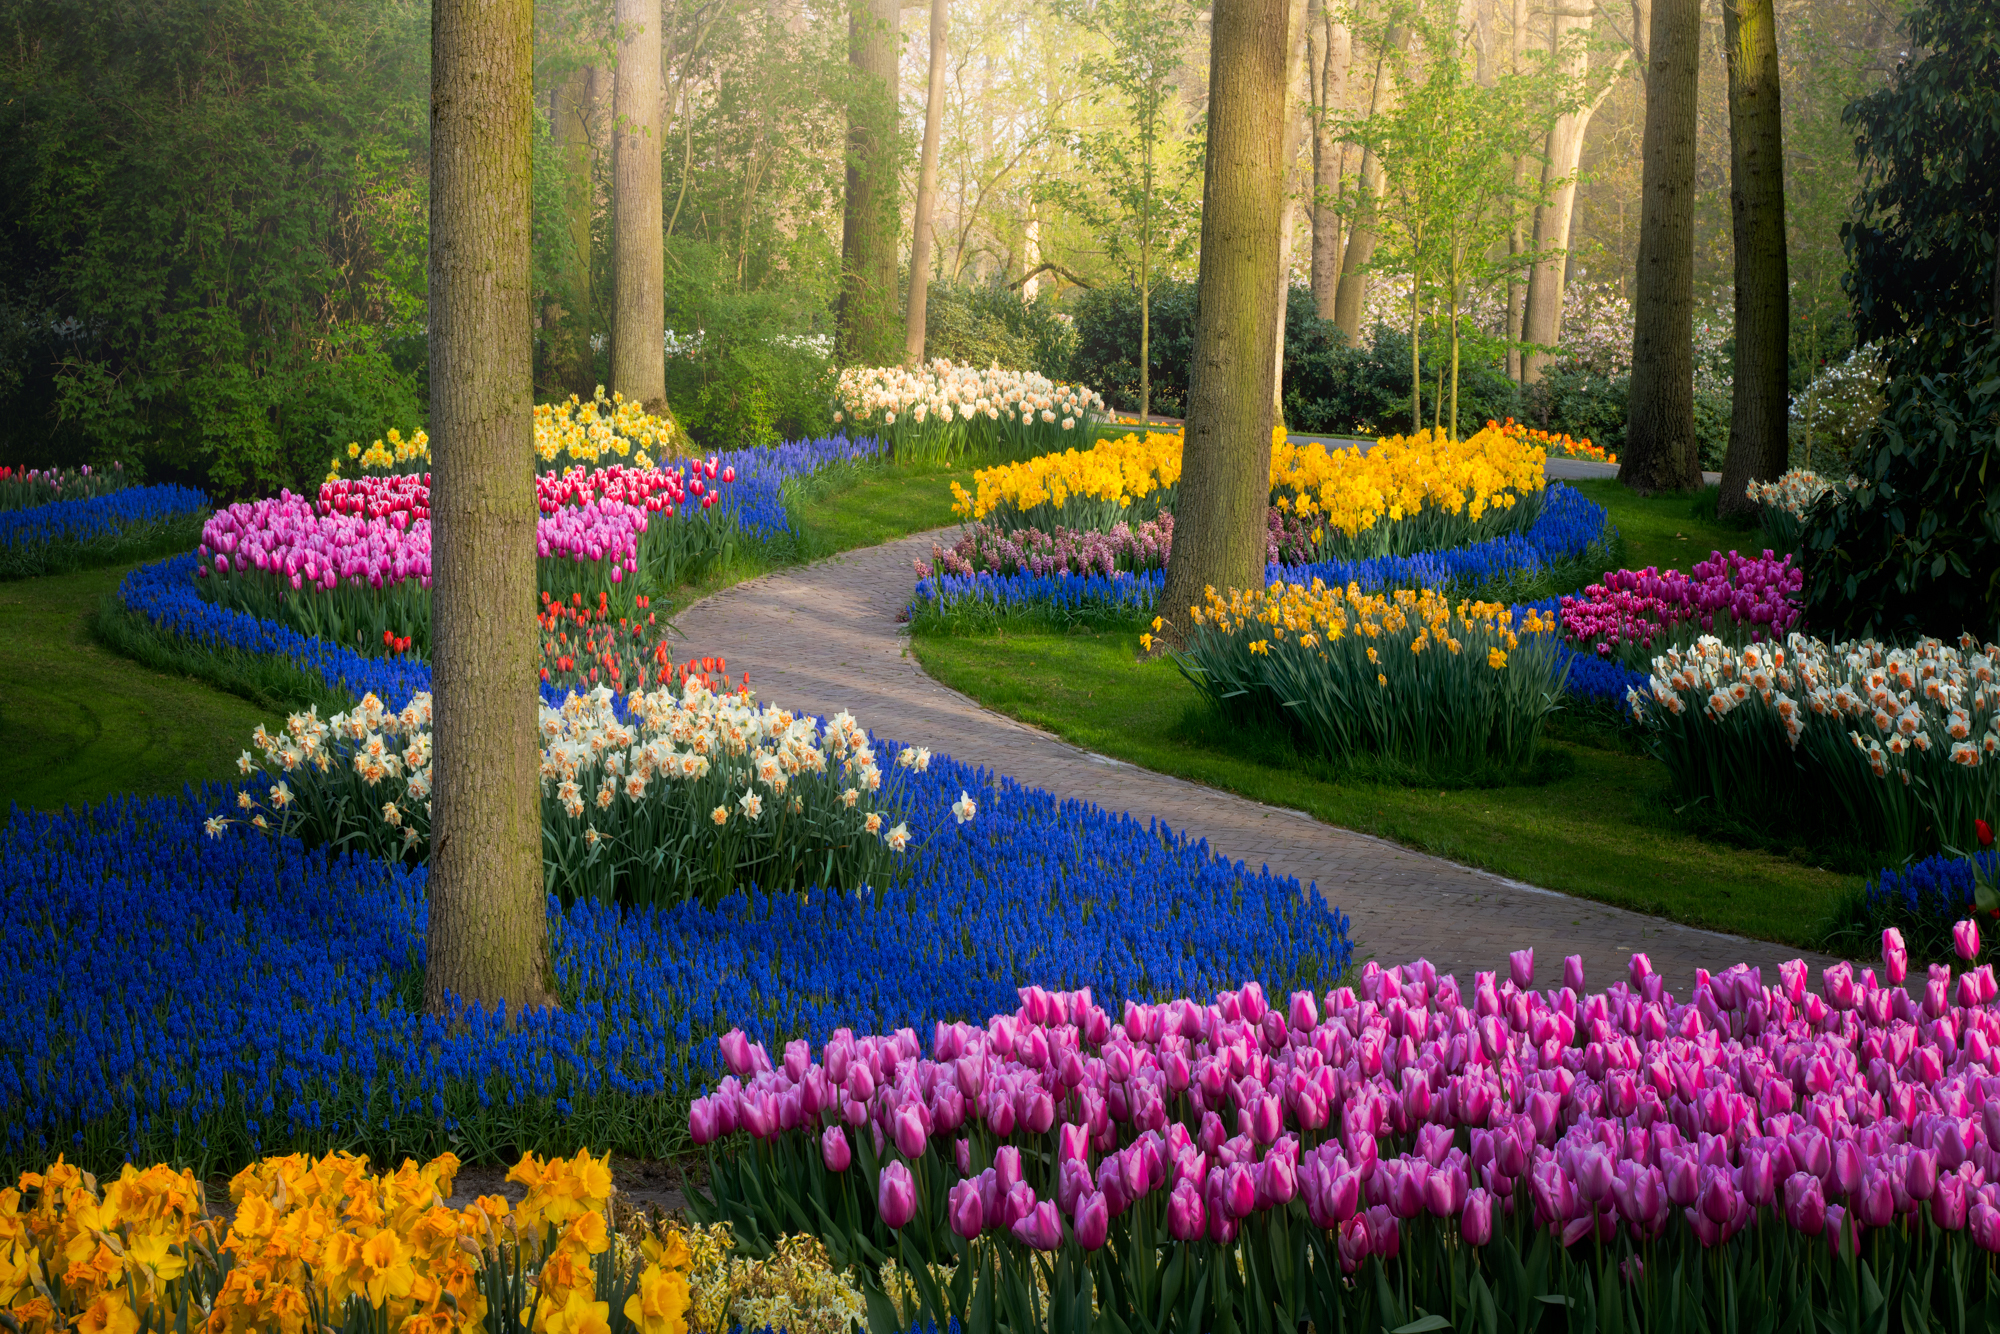 The world's most beautiful tulip garden is closed for 2020 – but here's a glimpse inside